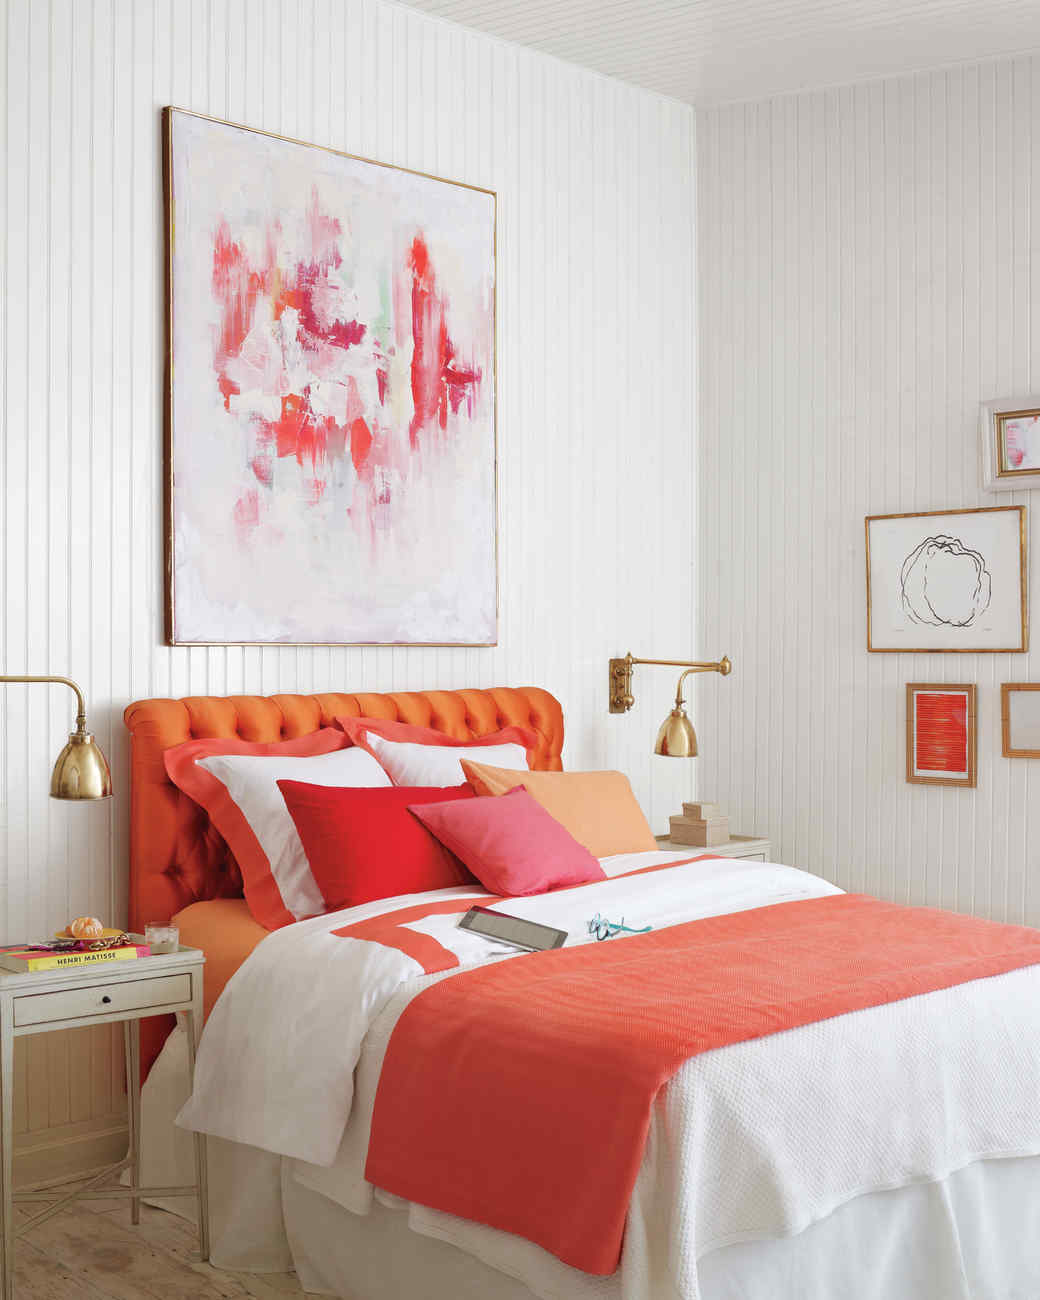 Bedroom Decorating Tips: Color-Blocking Decorating Ideas